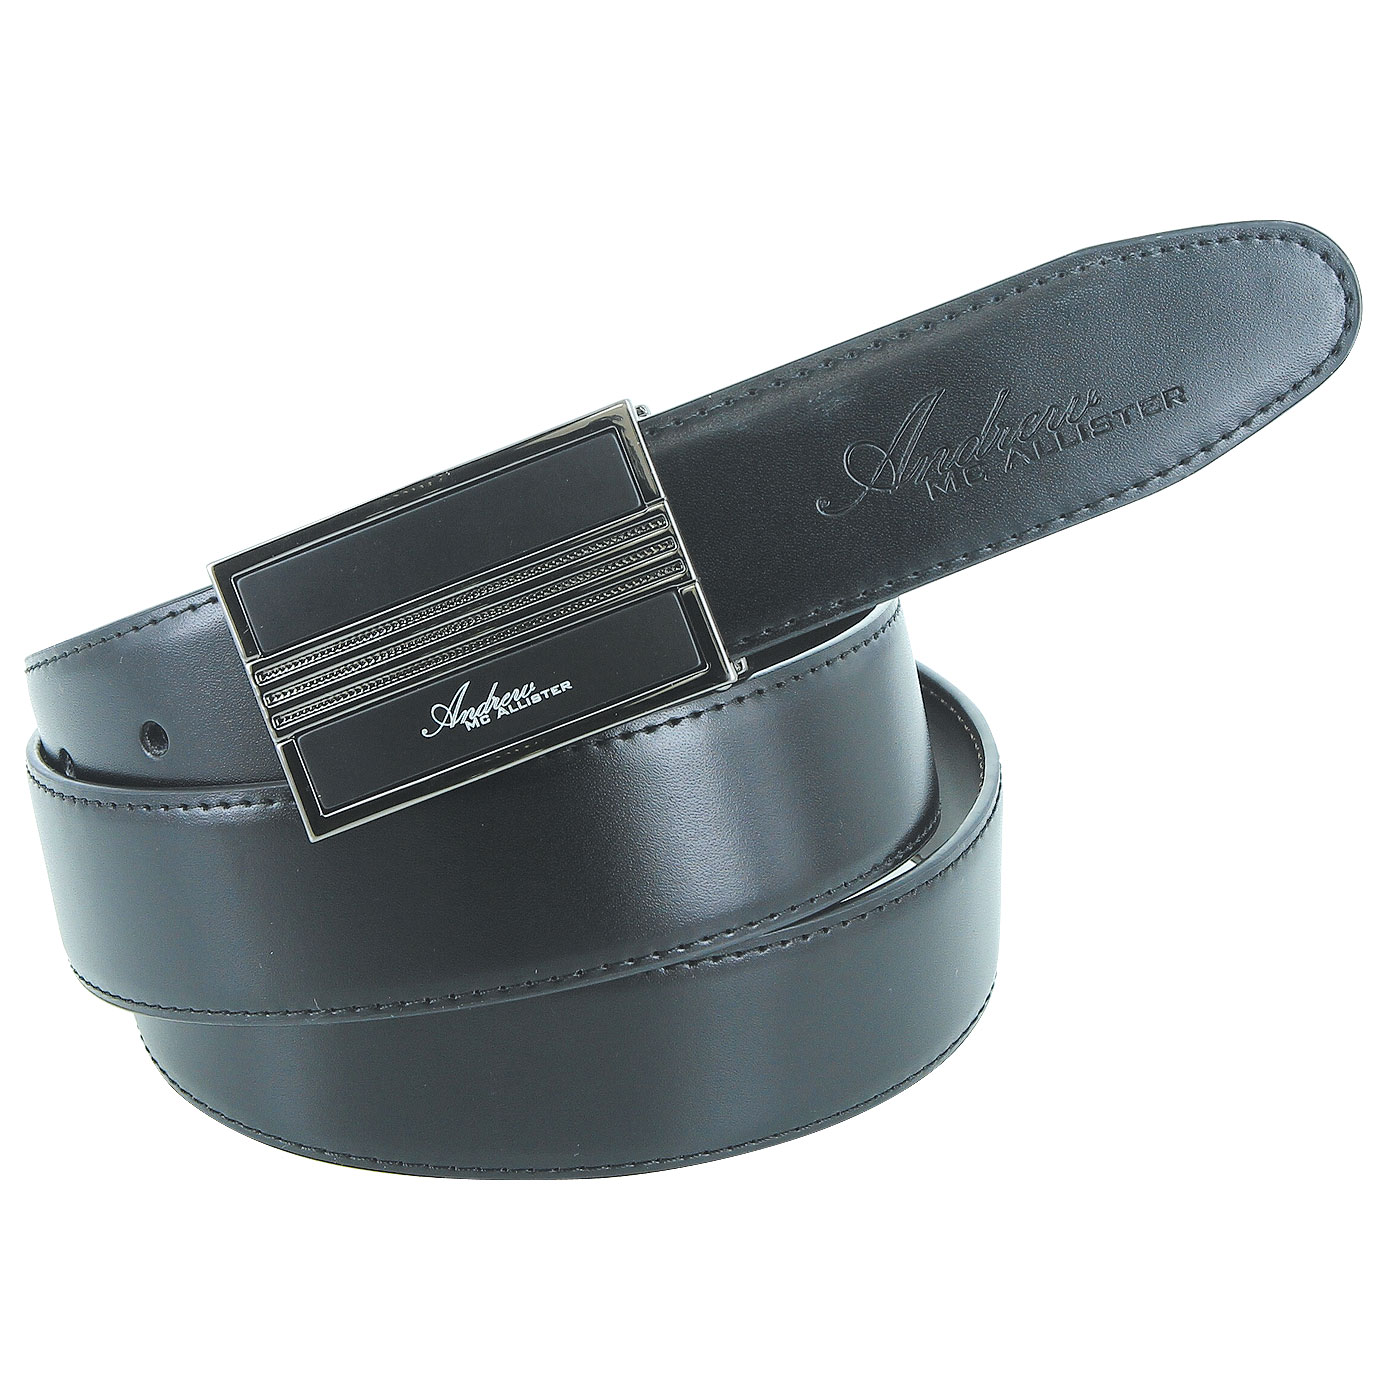 Fashion Leather Man's Belt Delivery in 48 Hours